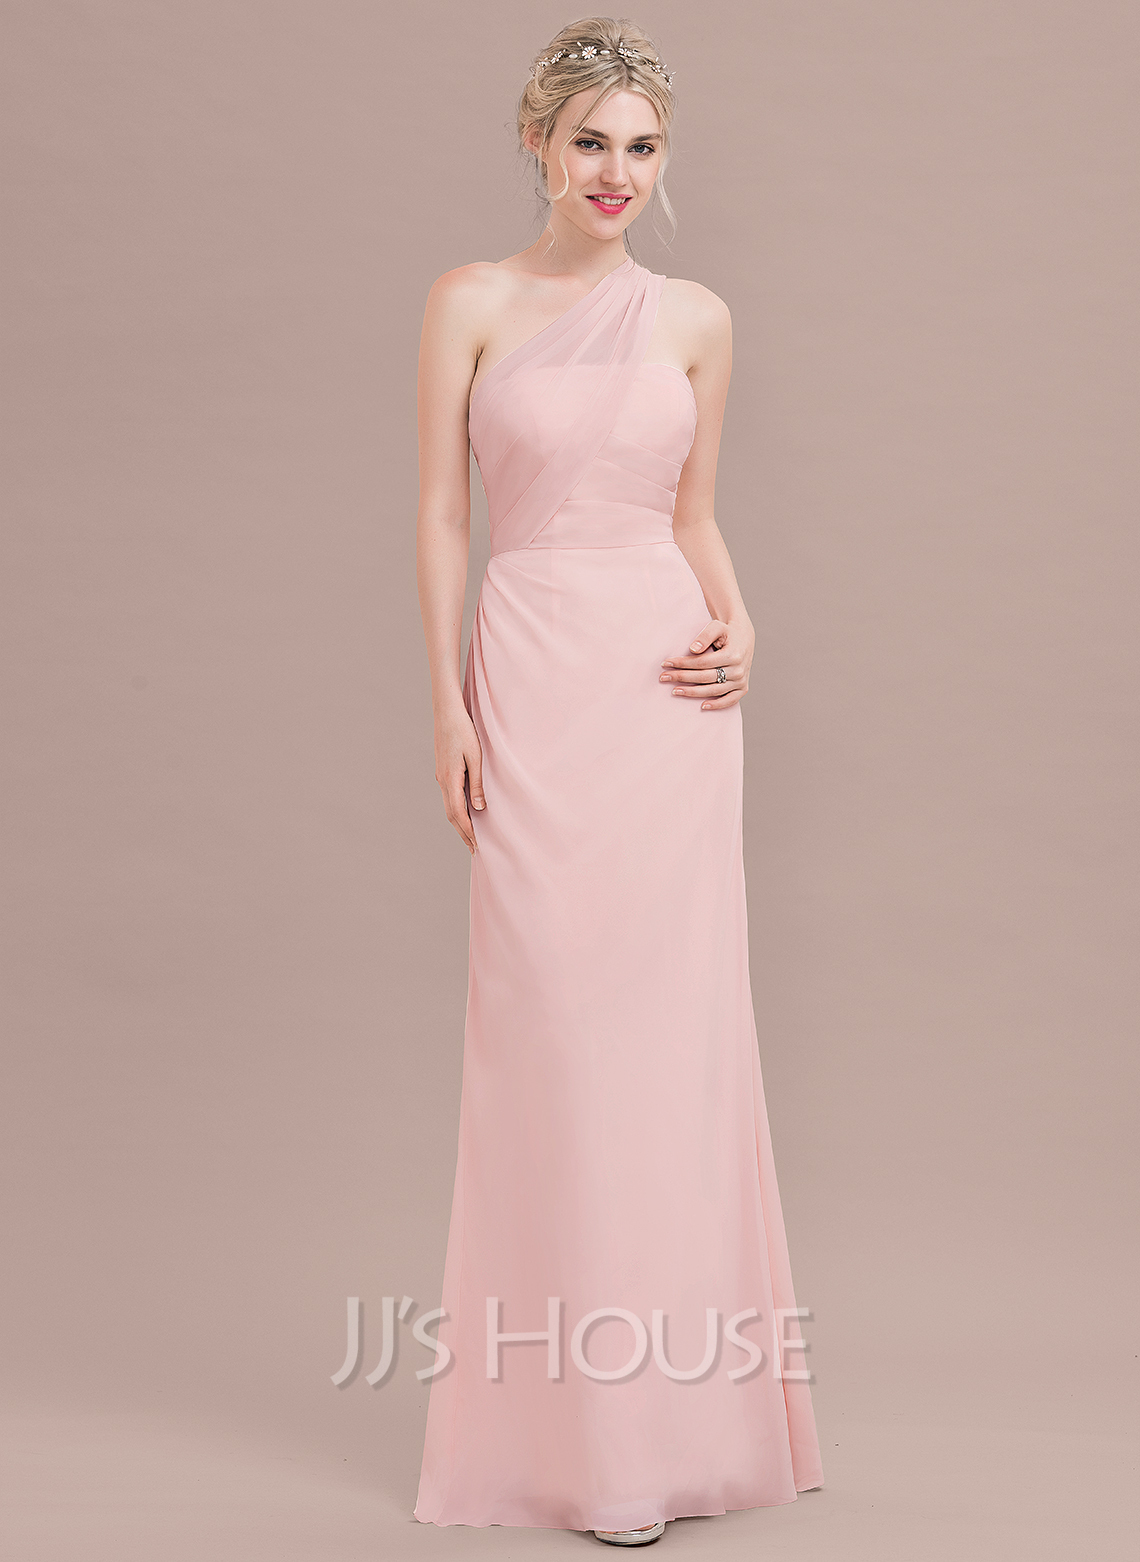 80601f551aec A-Line/Princess One-Shoulder Floor-Length Chiffon Bridesmaid Dress With  Ruffle. Loading zoom